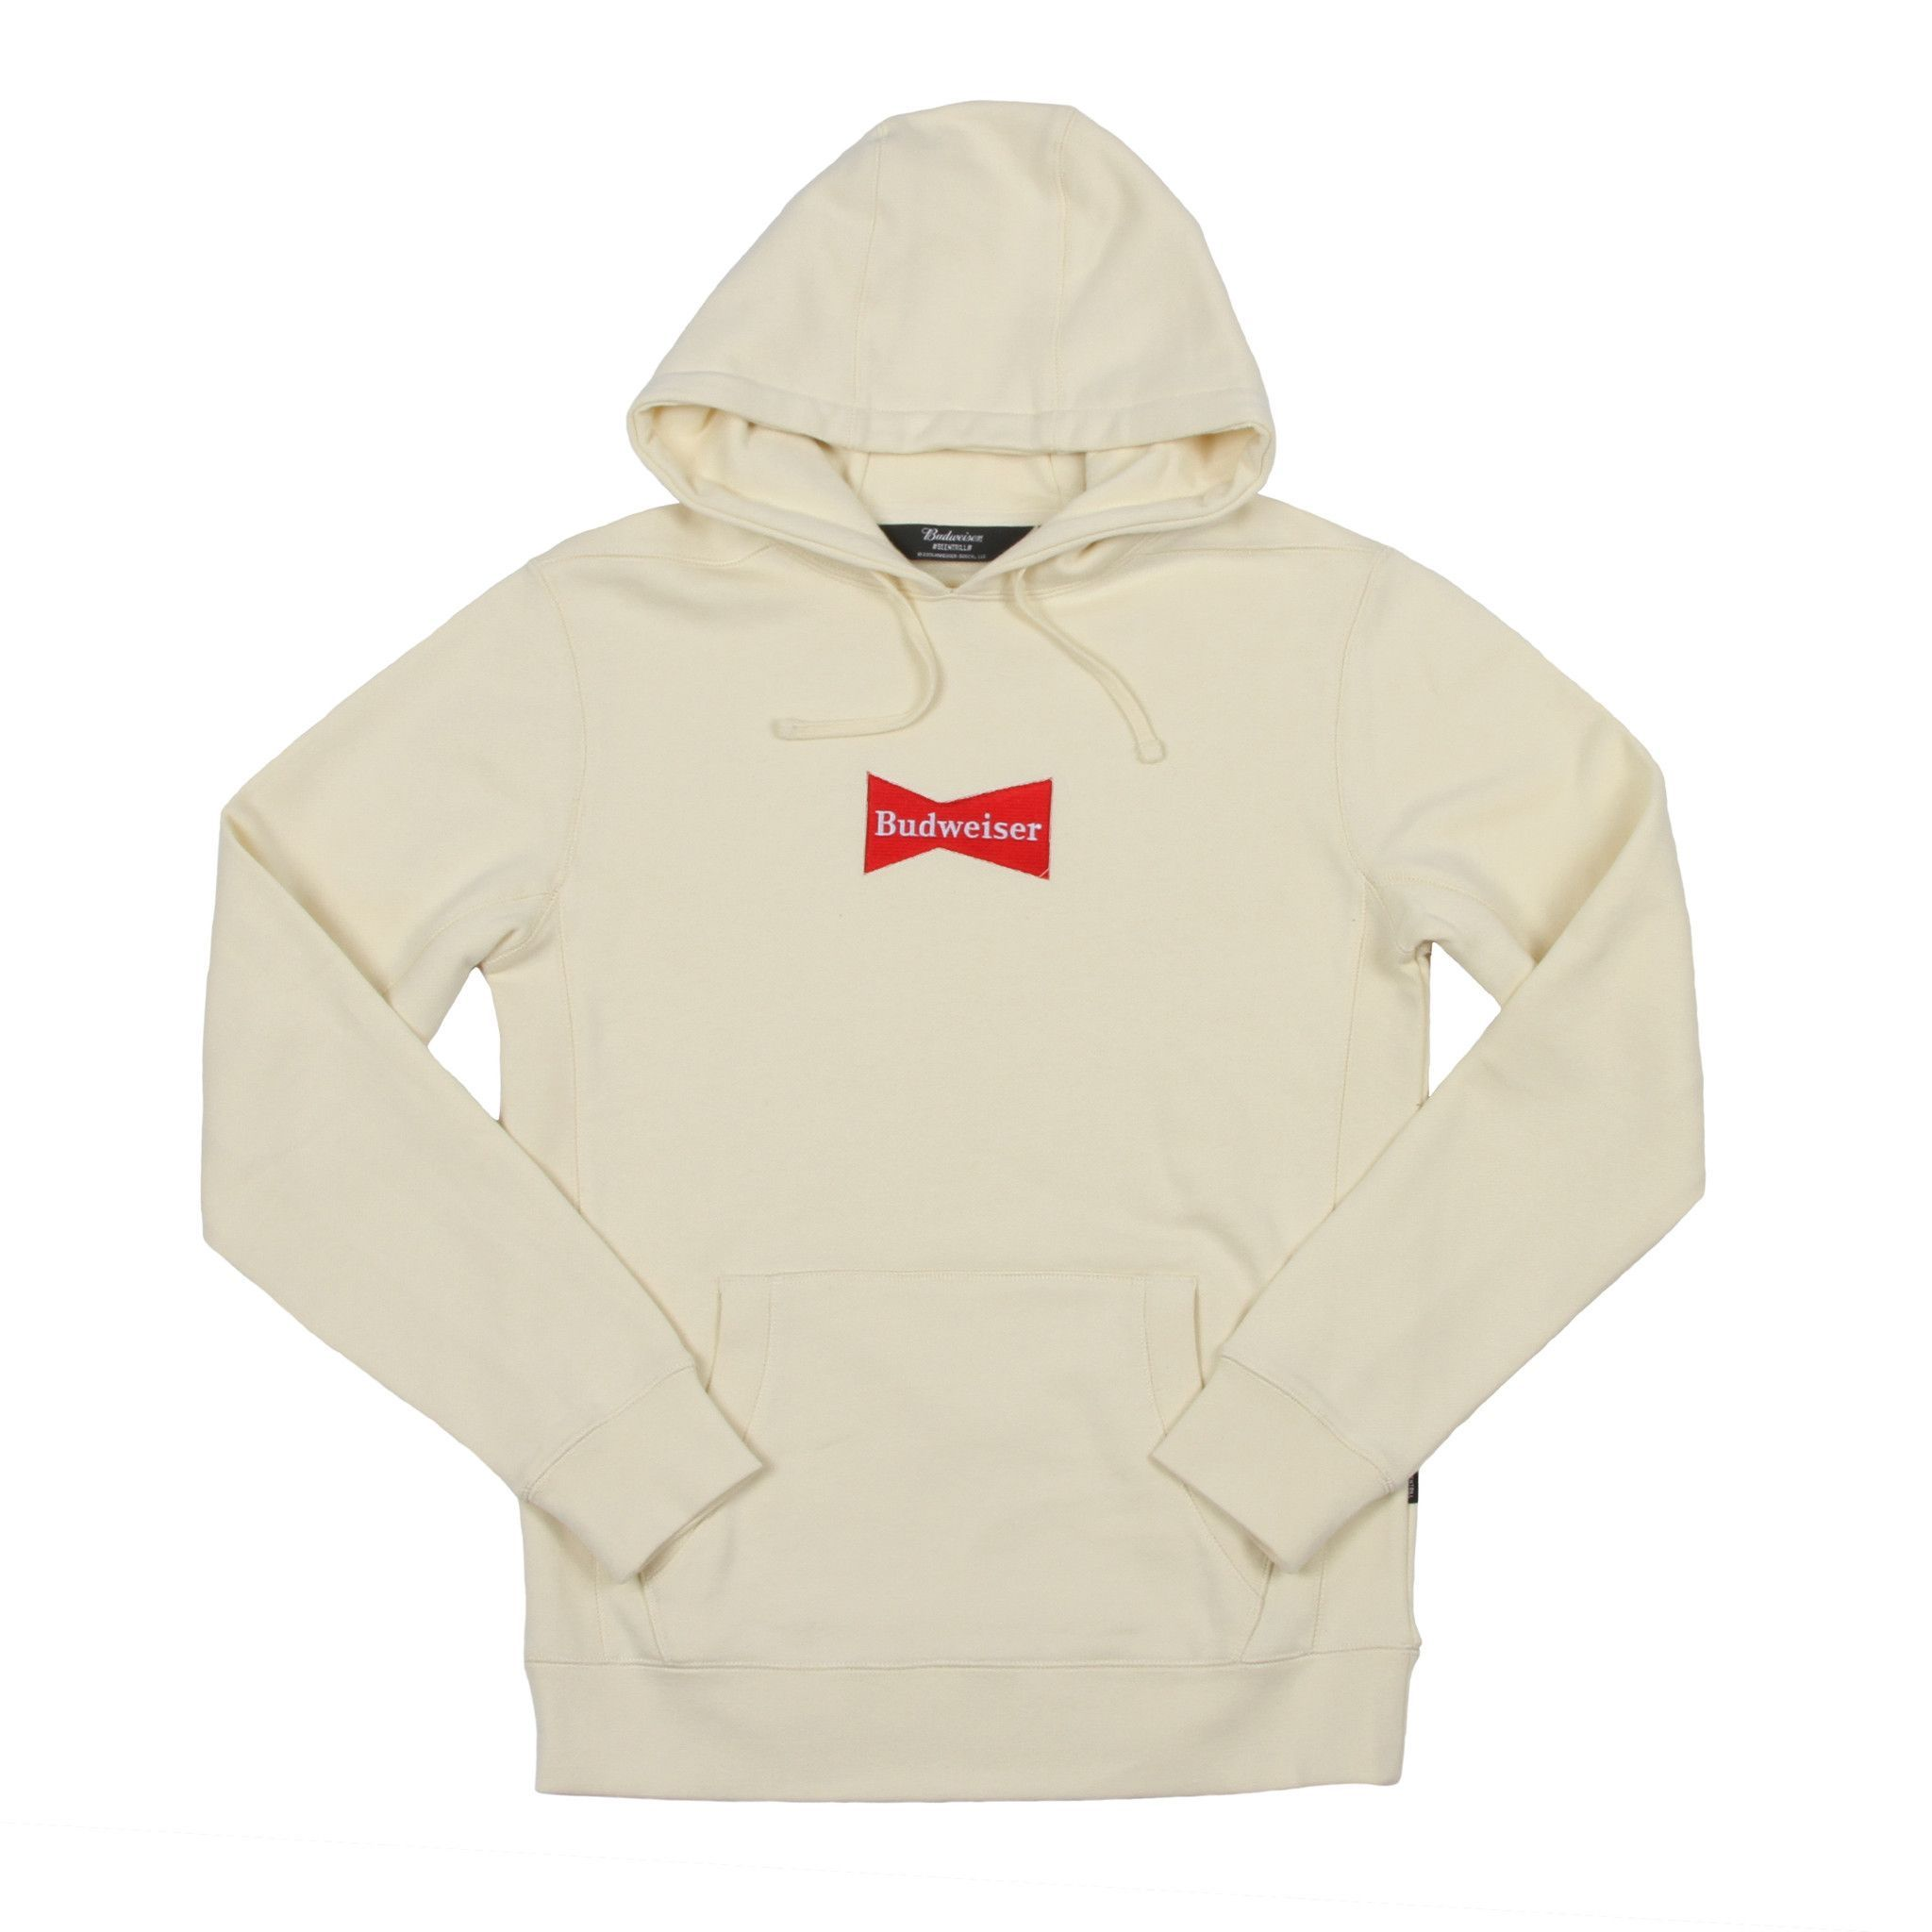 BeenTrill Budweiser Hoodie - Cream | Products | Pinterest | Hoodie ...